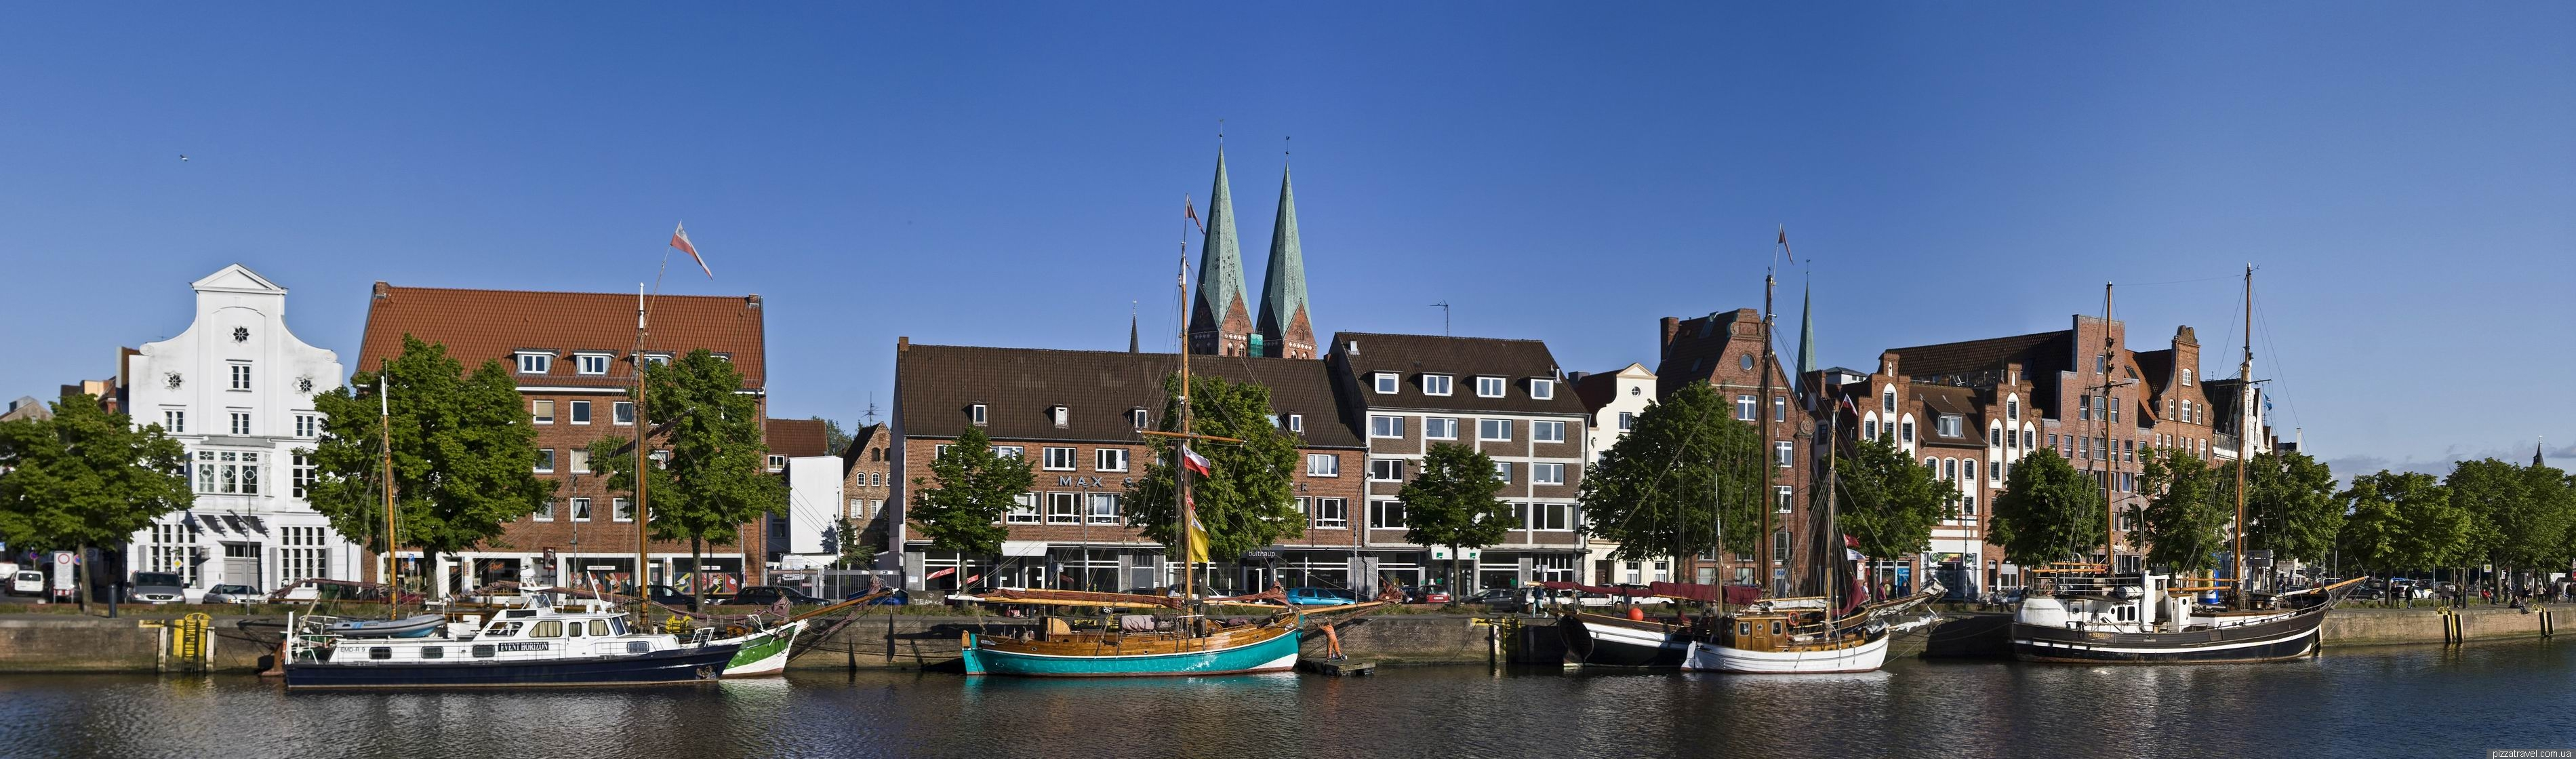 Lubeck Germany  city images : Lubeck Germany Blog about interesting places